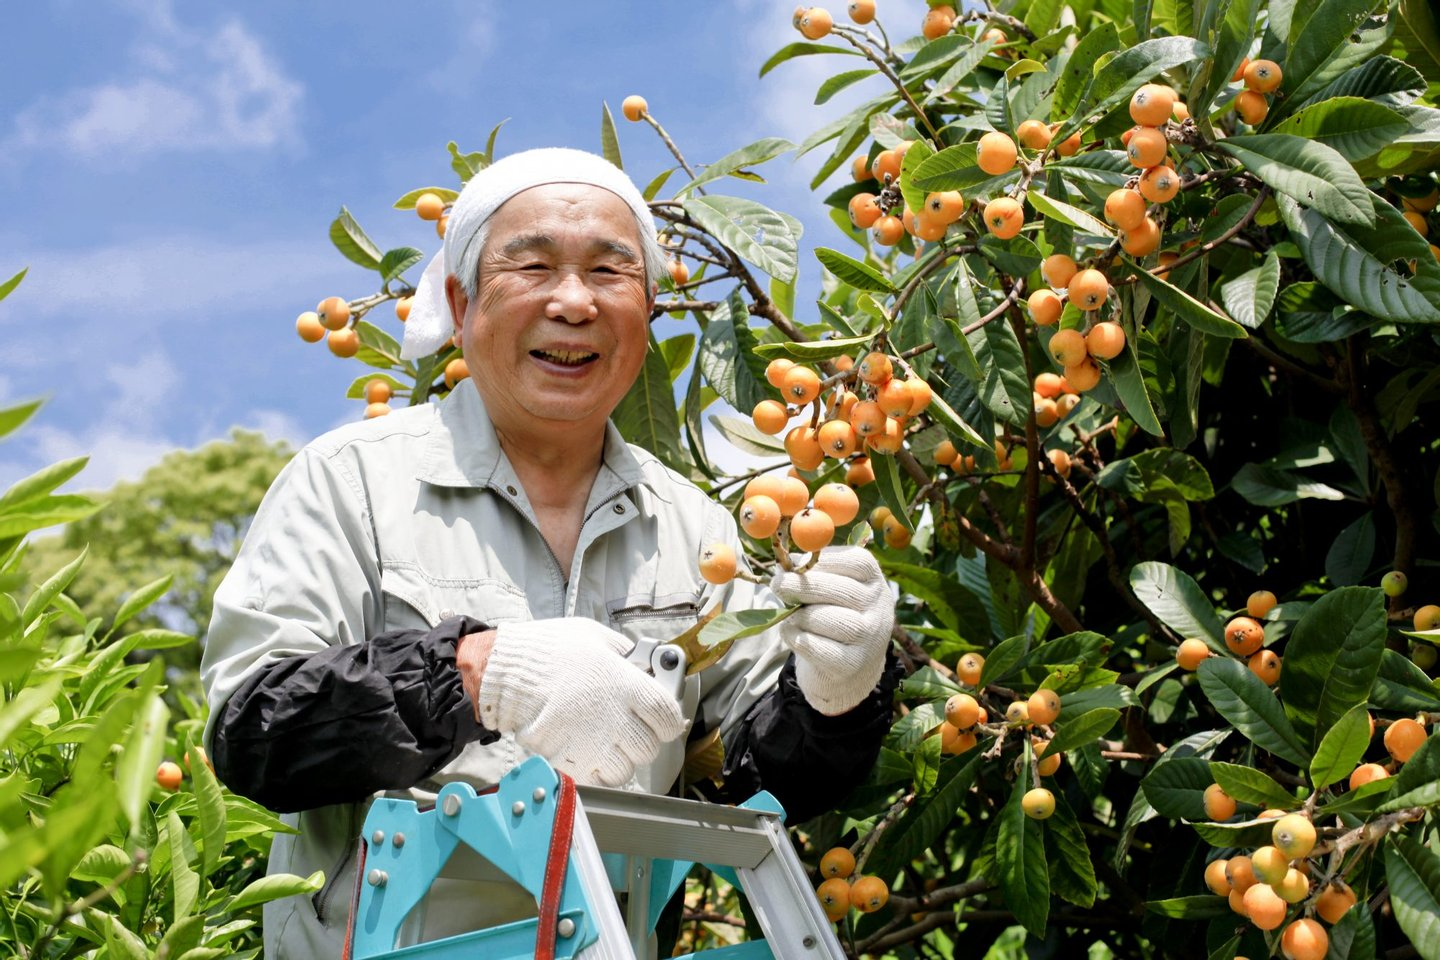 Loquat, Beauty In Nature, Vegetable Garden, Orchard, Flowerbed, Steps, Ladder, Senior Adult, Smiling, Moving Up, Working, Picking, Harvesting, Japanese Ethnicity, Asian Ethnicity, Action, Mobility, Freshness, Growth, Idyllic, Multi Colored, Bright, Green Color, Wood - Material, Full, Healthcare And Medicine, Rural Scene, Cheerful, Farmer, Occupation, Taiwan, Japan, China - East Asia, Fruit, Ripe, Crop, Summer, Staircase, Farm, Village, Sunshine Tree, It's Sunny, Jason Day - Actor, The Yellow Race,